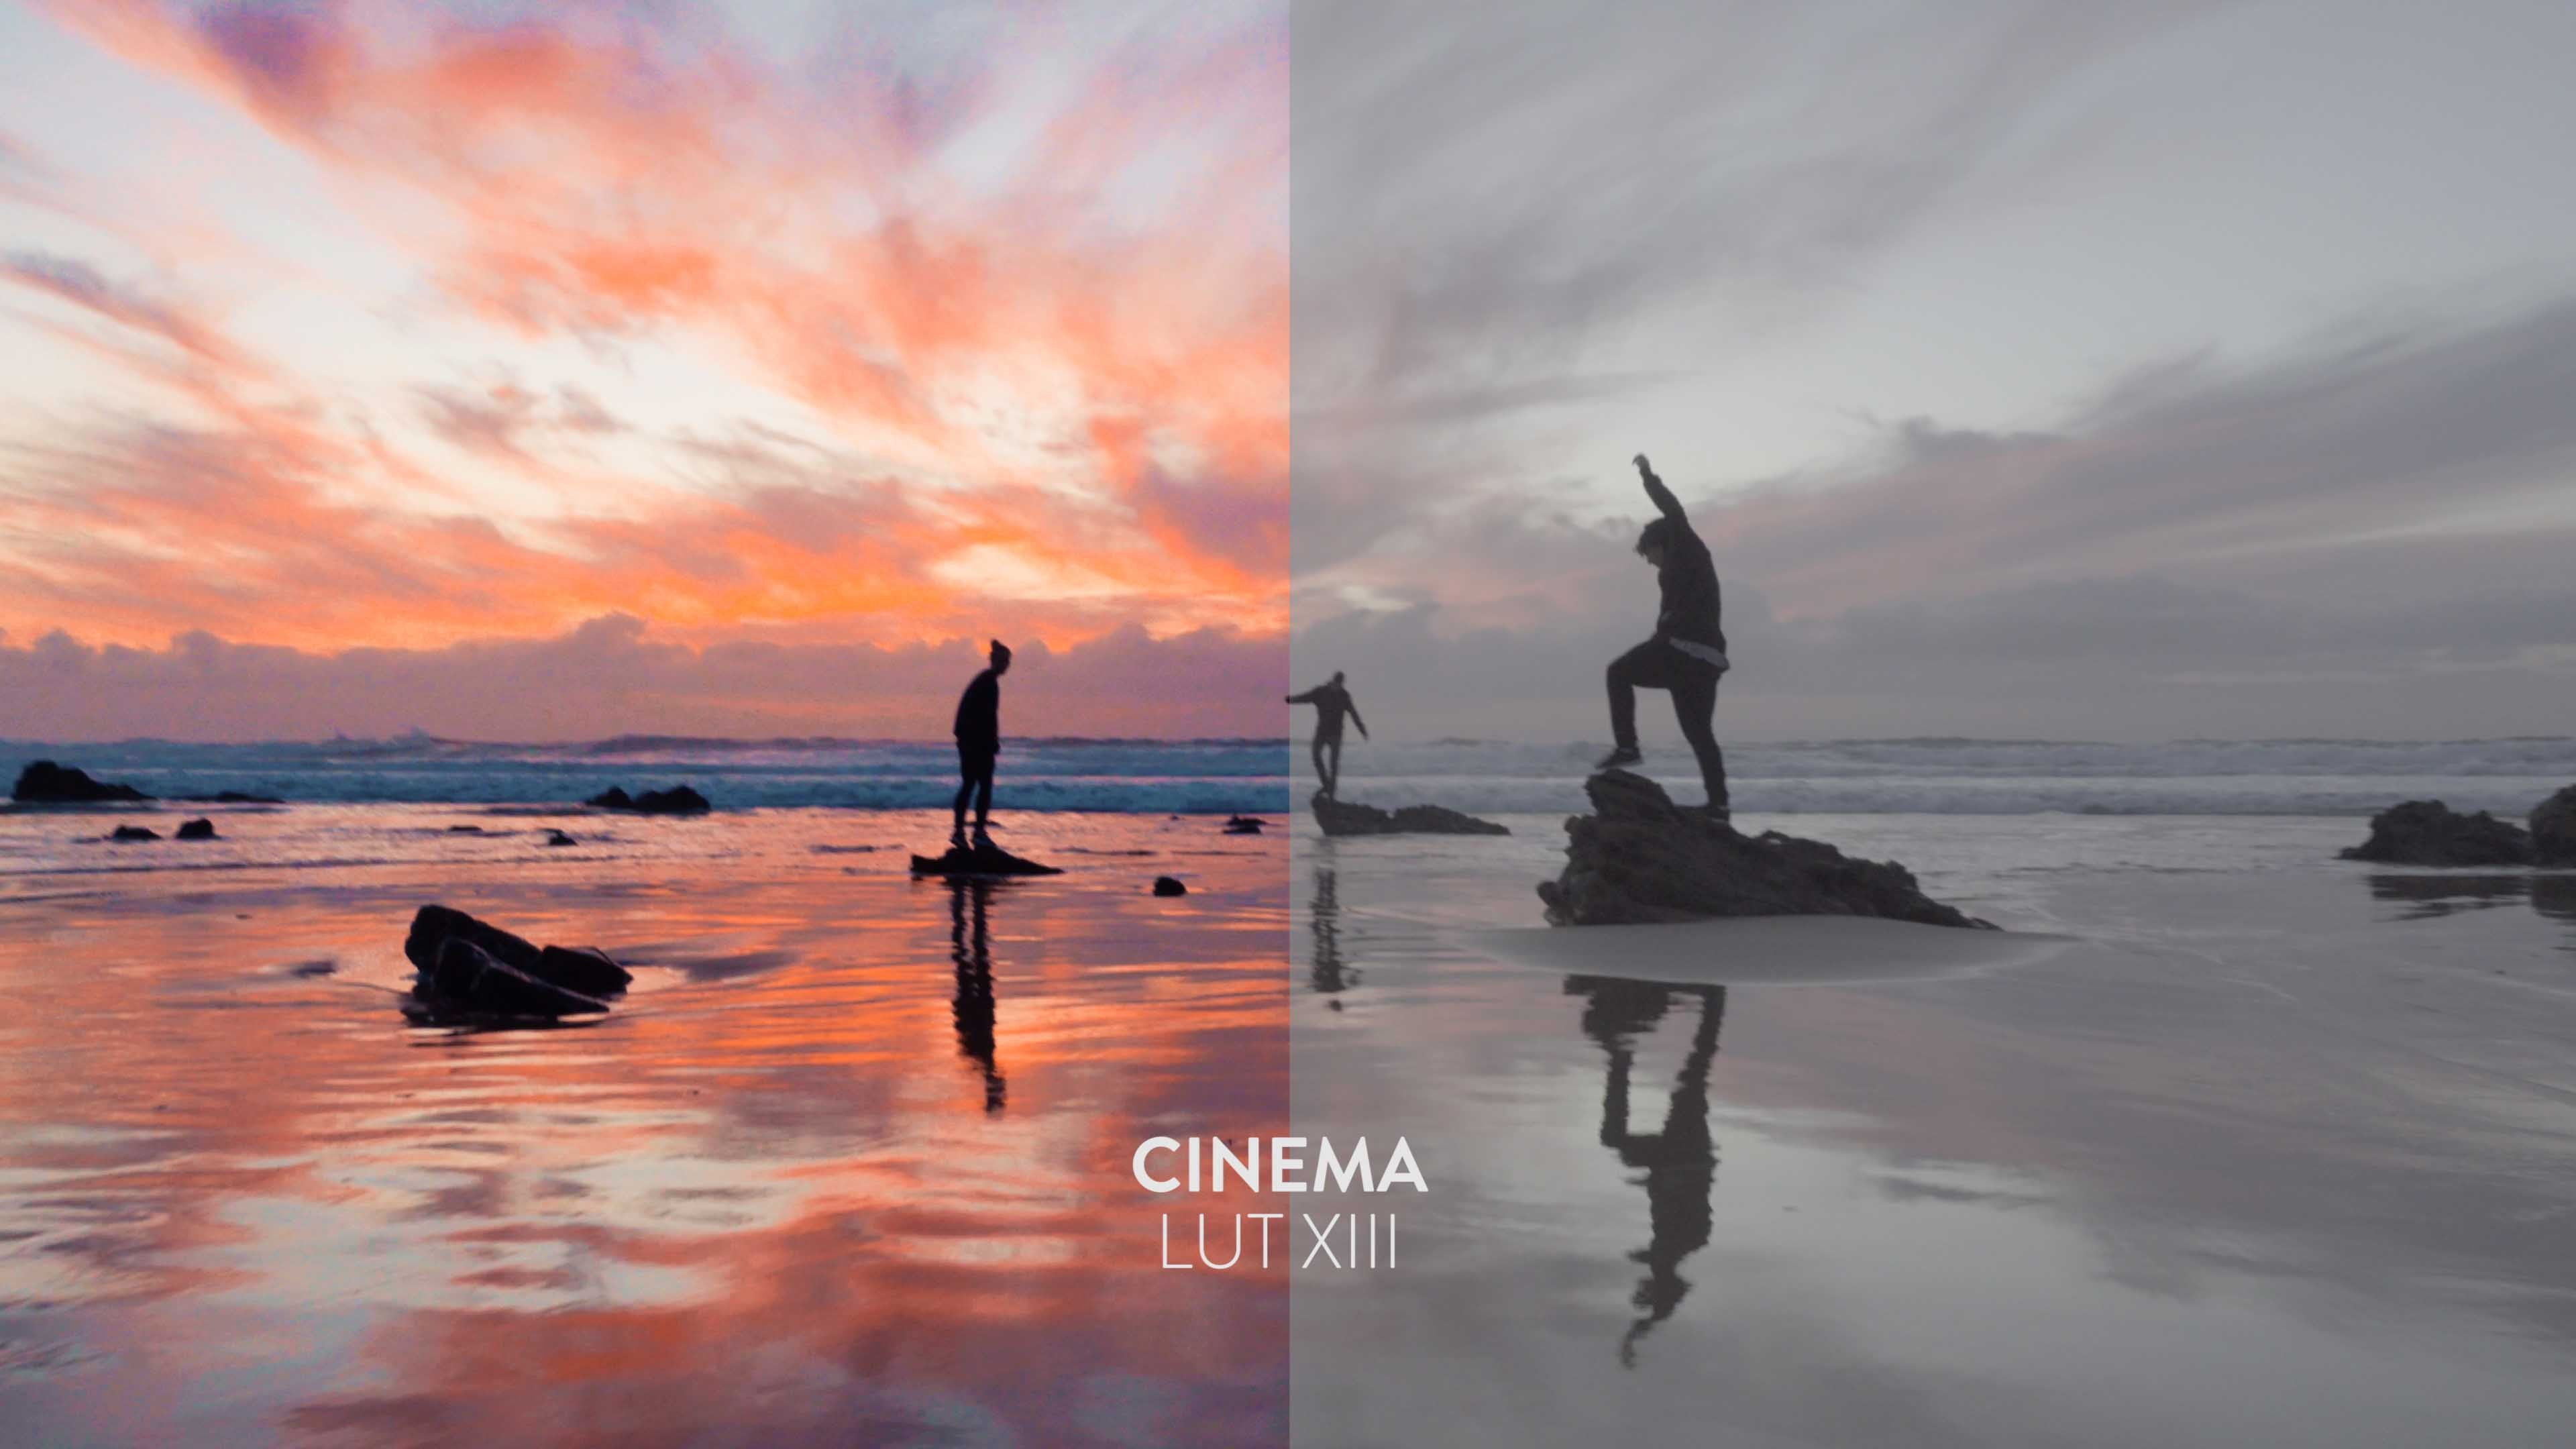 Cinematic LUTs designed for the Panasonic GH5 V-LOG